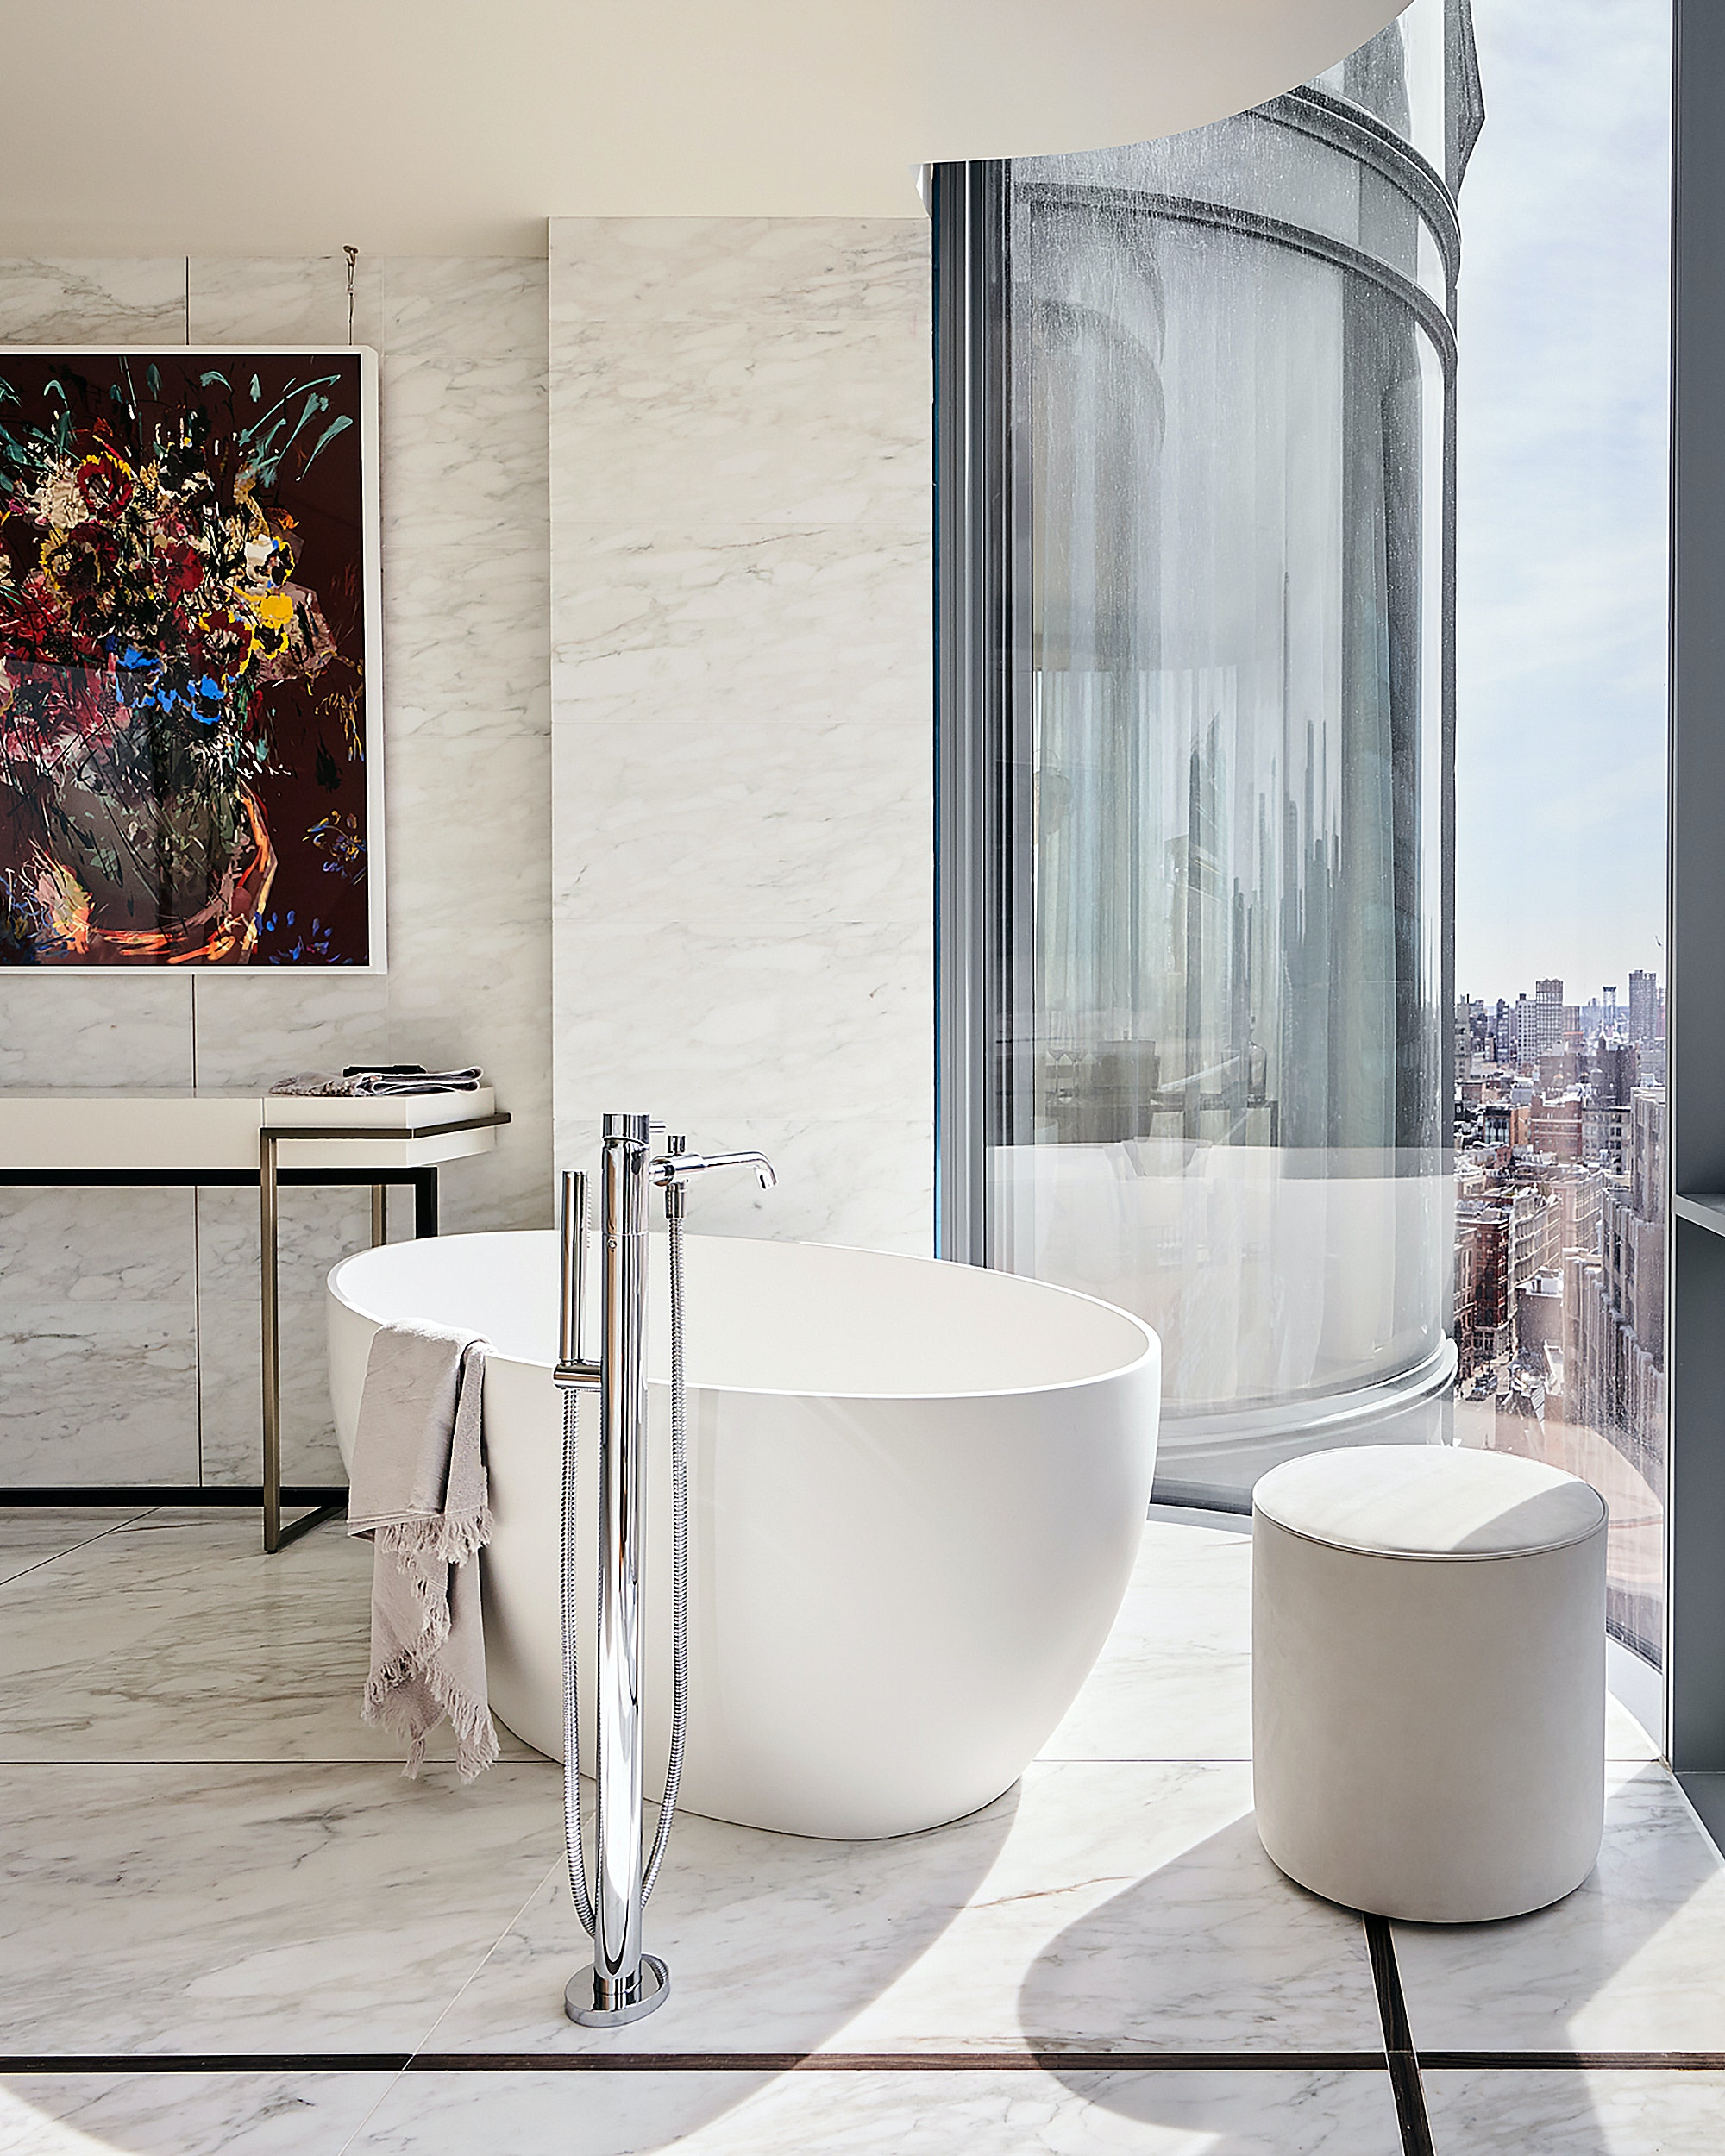 565-Broome-renzo-piano-bathroom